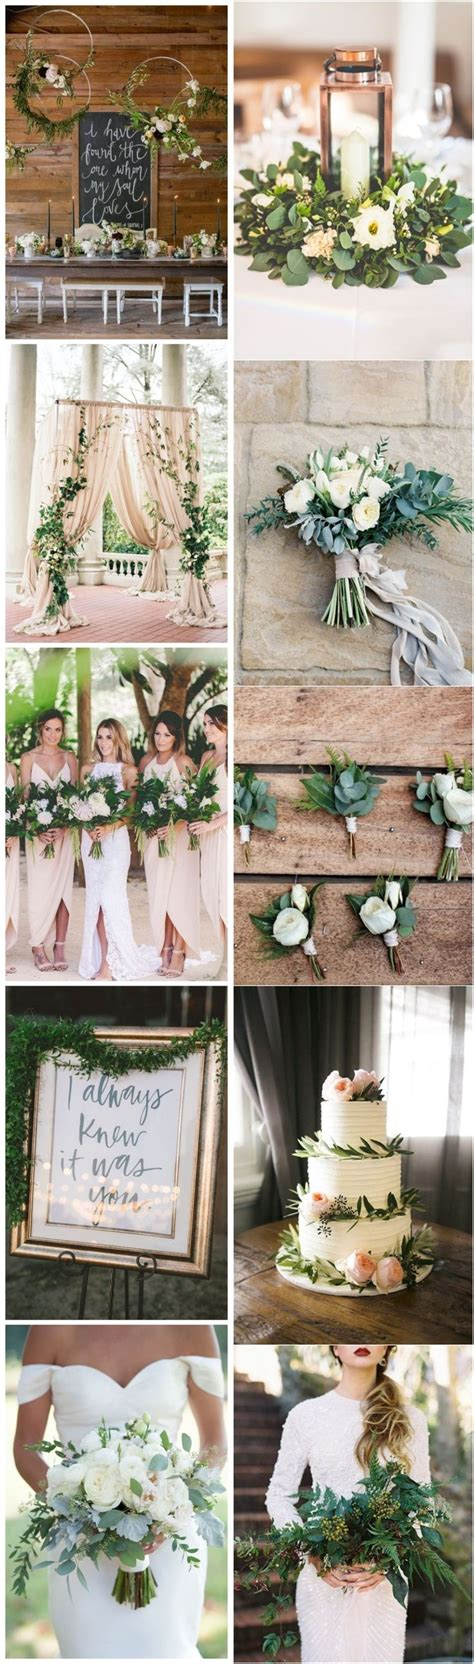 Best 25 Pastel Wedding Colors Ideas On Pinterest Summer